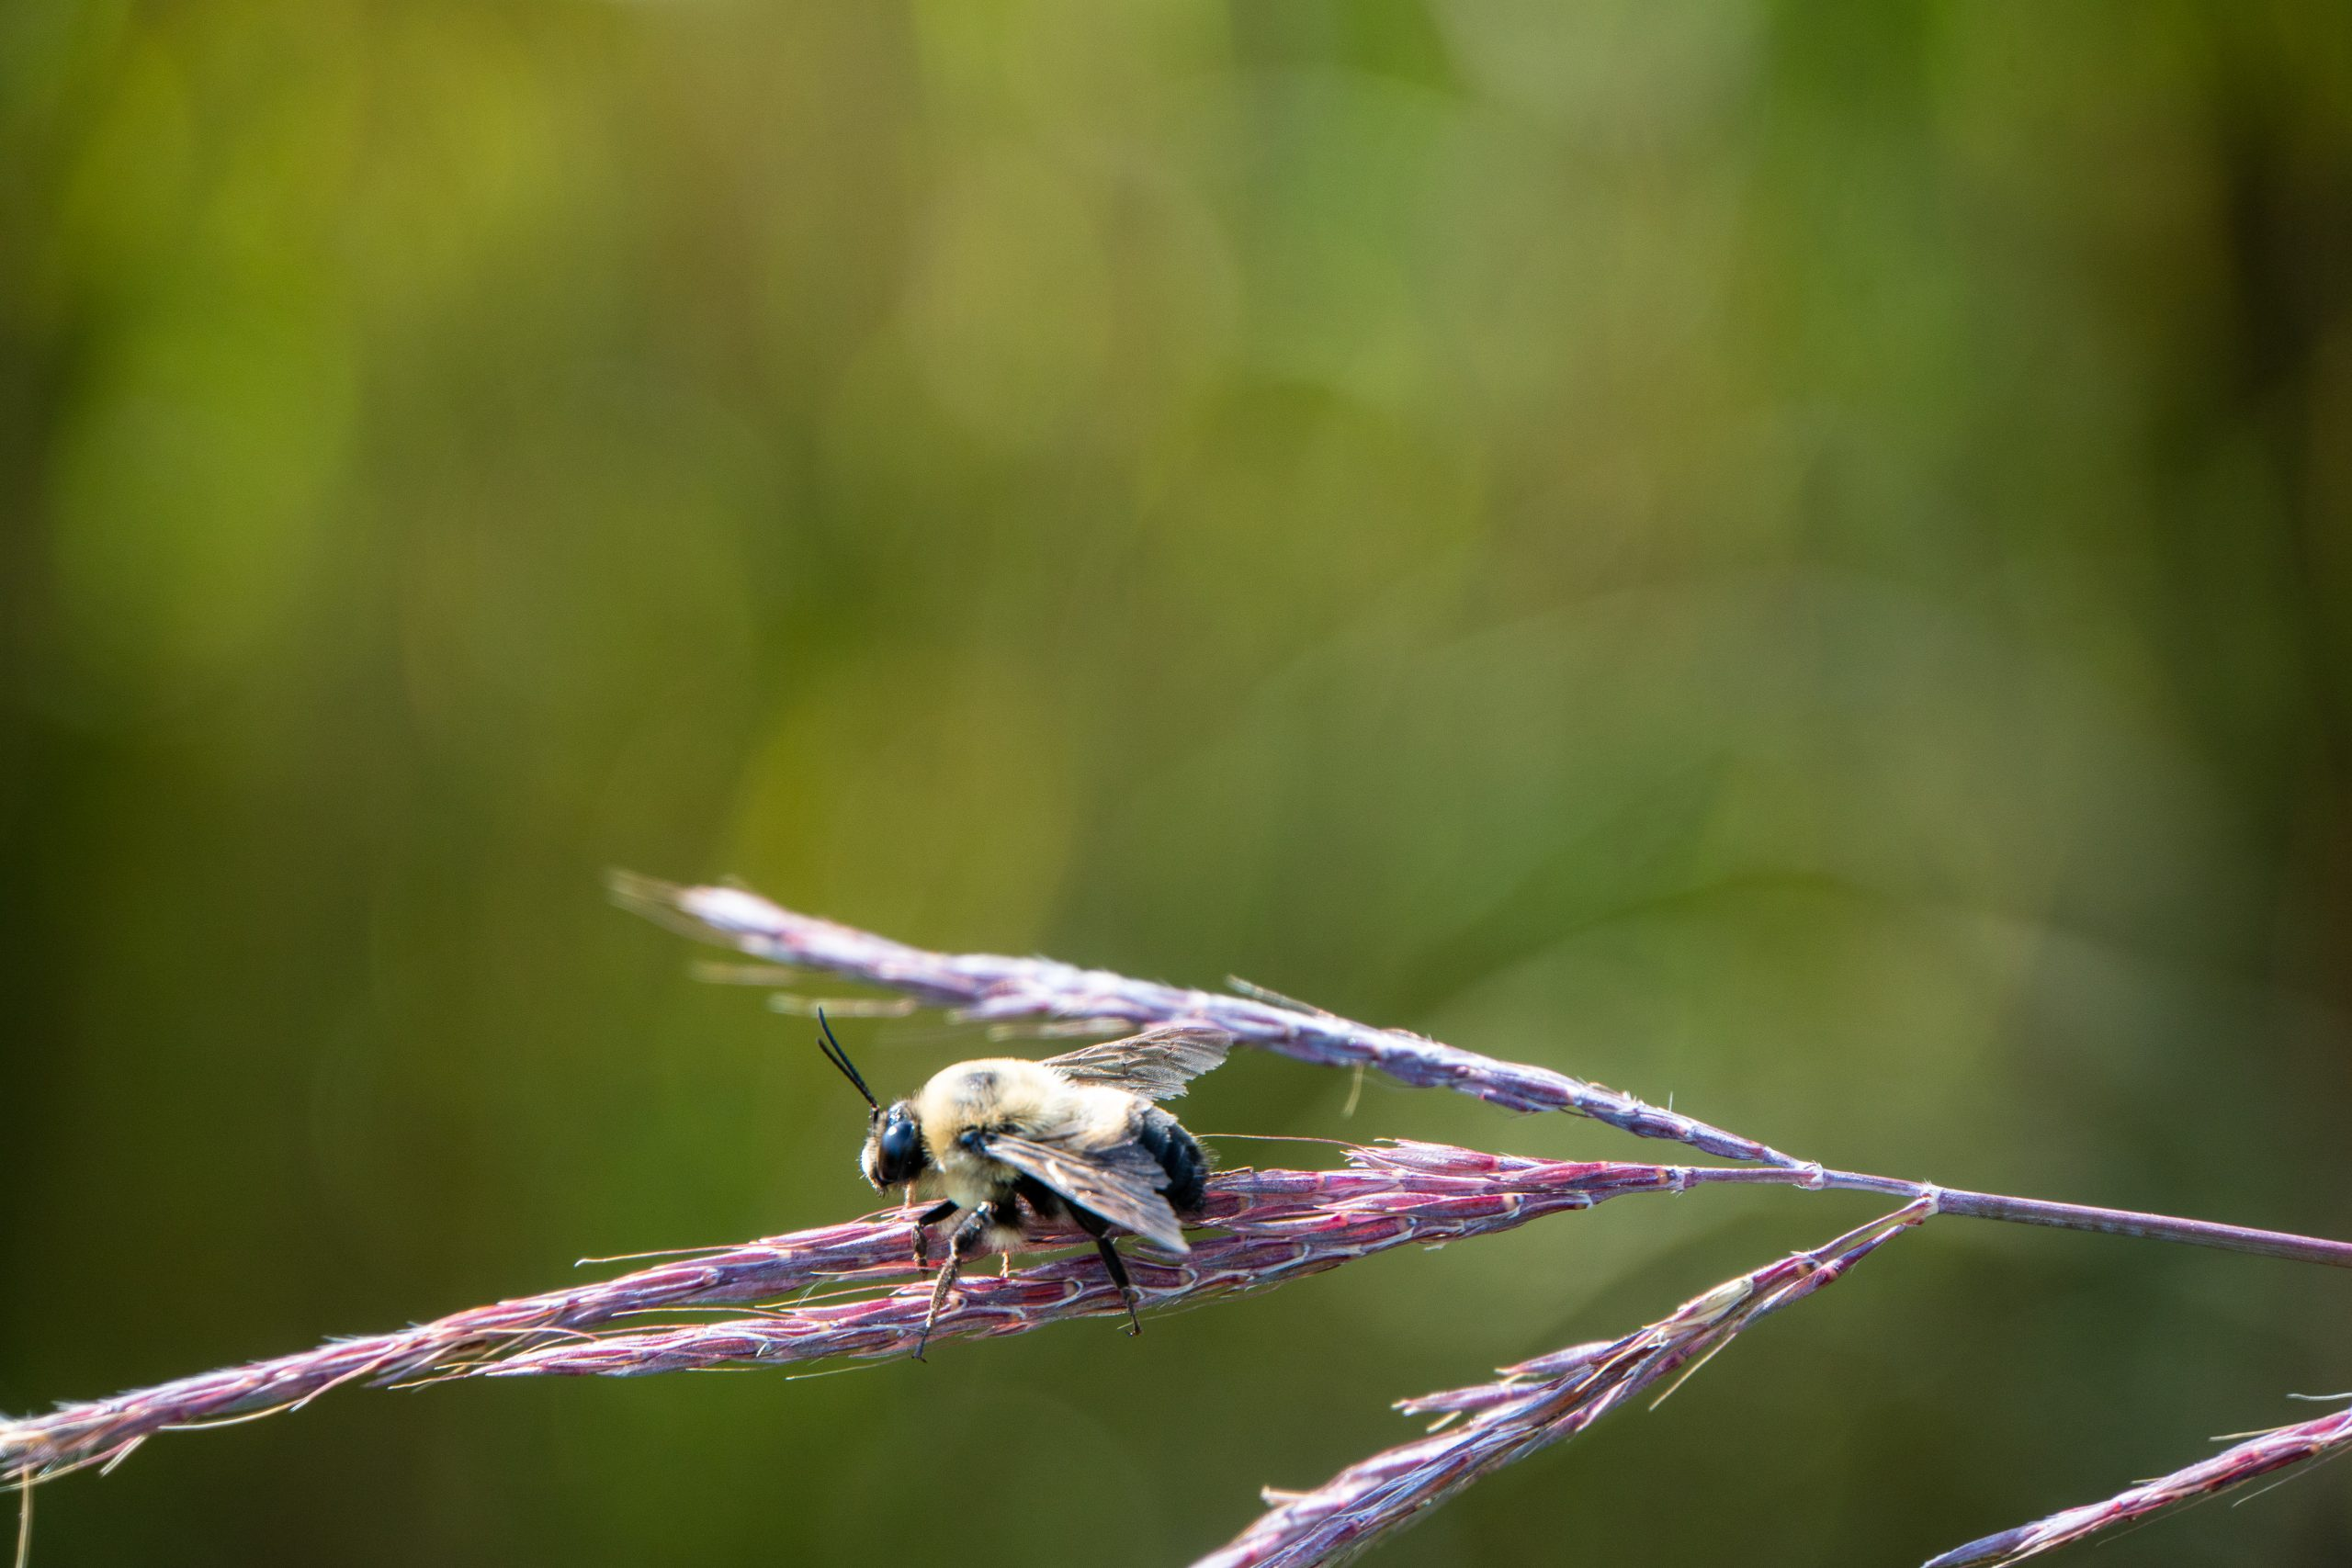 (4/4) Well hello, little bumblebee. Please enjoy our prairie. nature, wildlife, animal, insect, bee Photo: Marguerite Tonjes